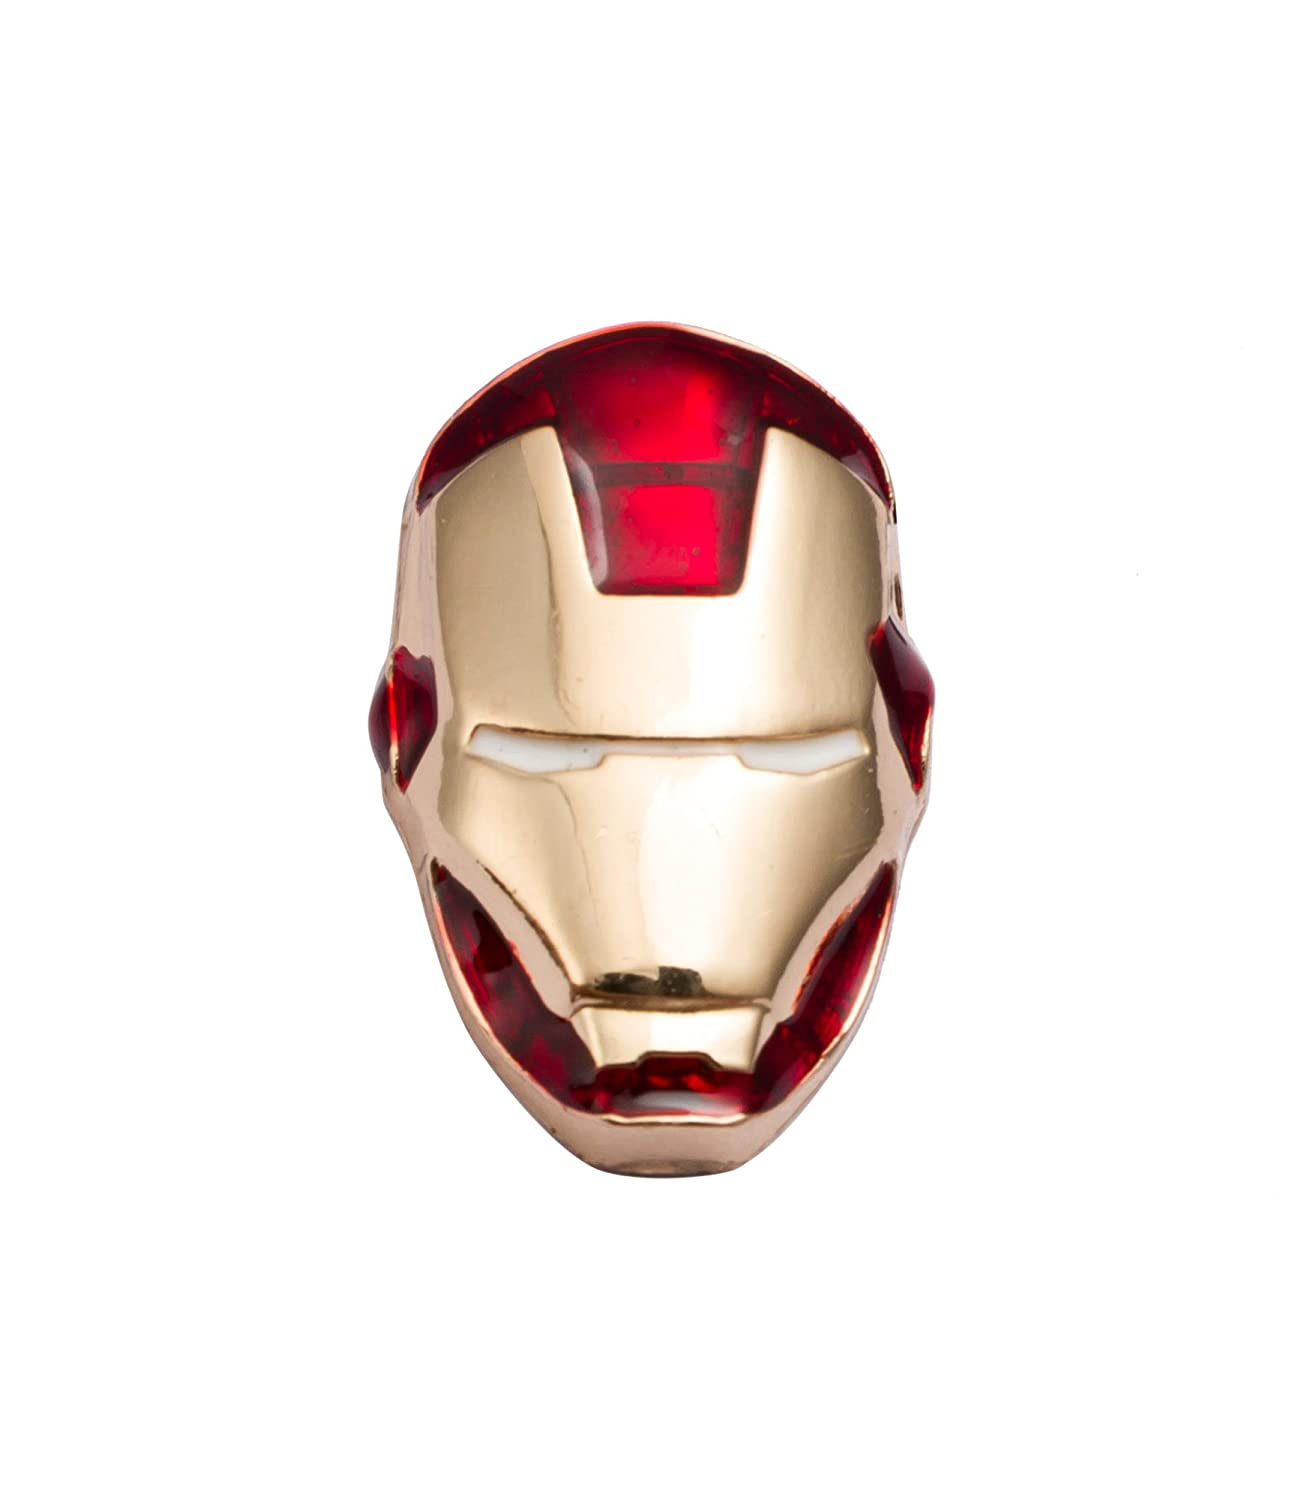 Buy Knighthood Men S Iron Man Face Alloy Lapel Pin Shirt Stud Golden And Red At Amazon In